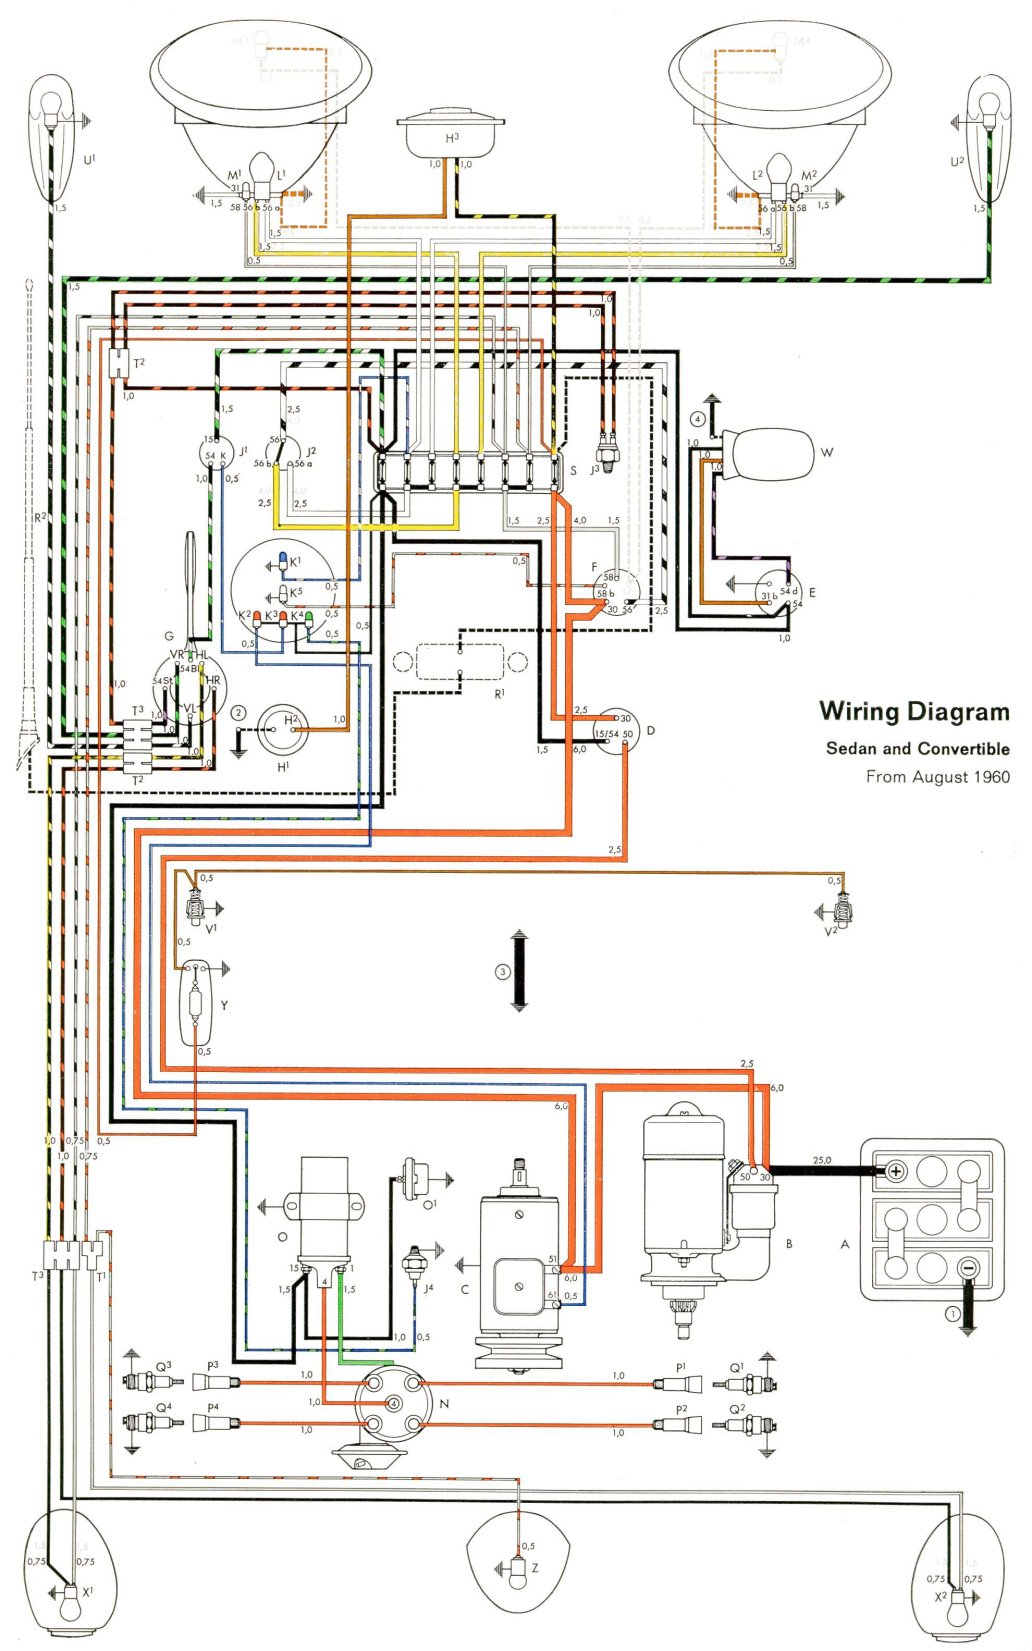 bug_61 1961 beetle wiring diagram thegoldenbug com vw bug wiring diagram at creativeand.co